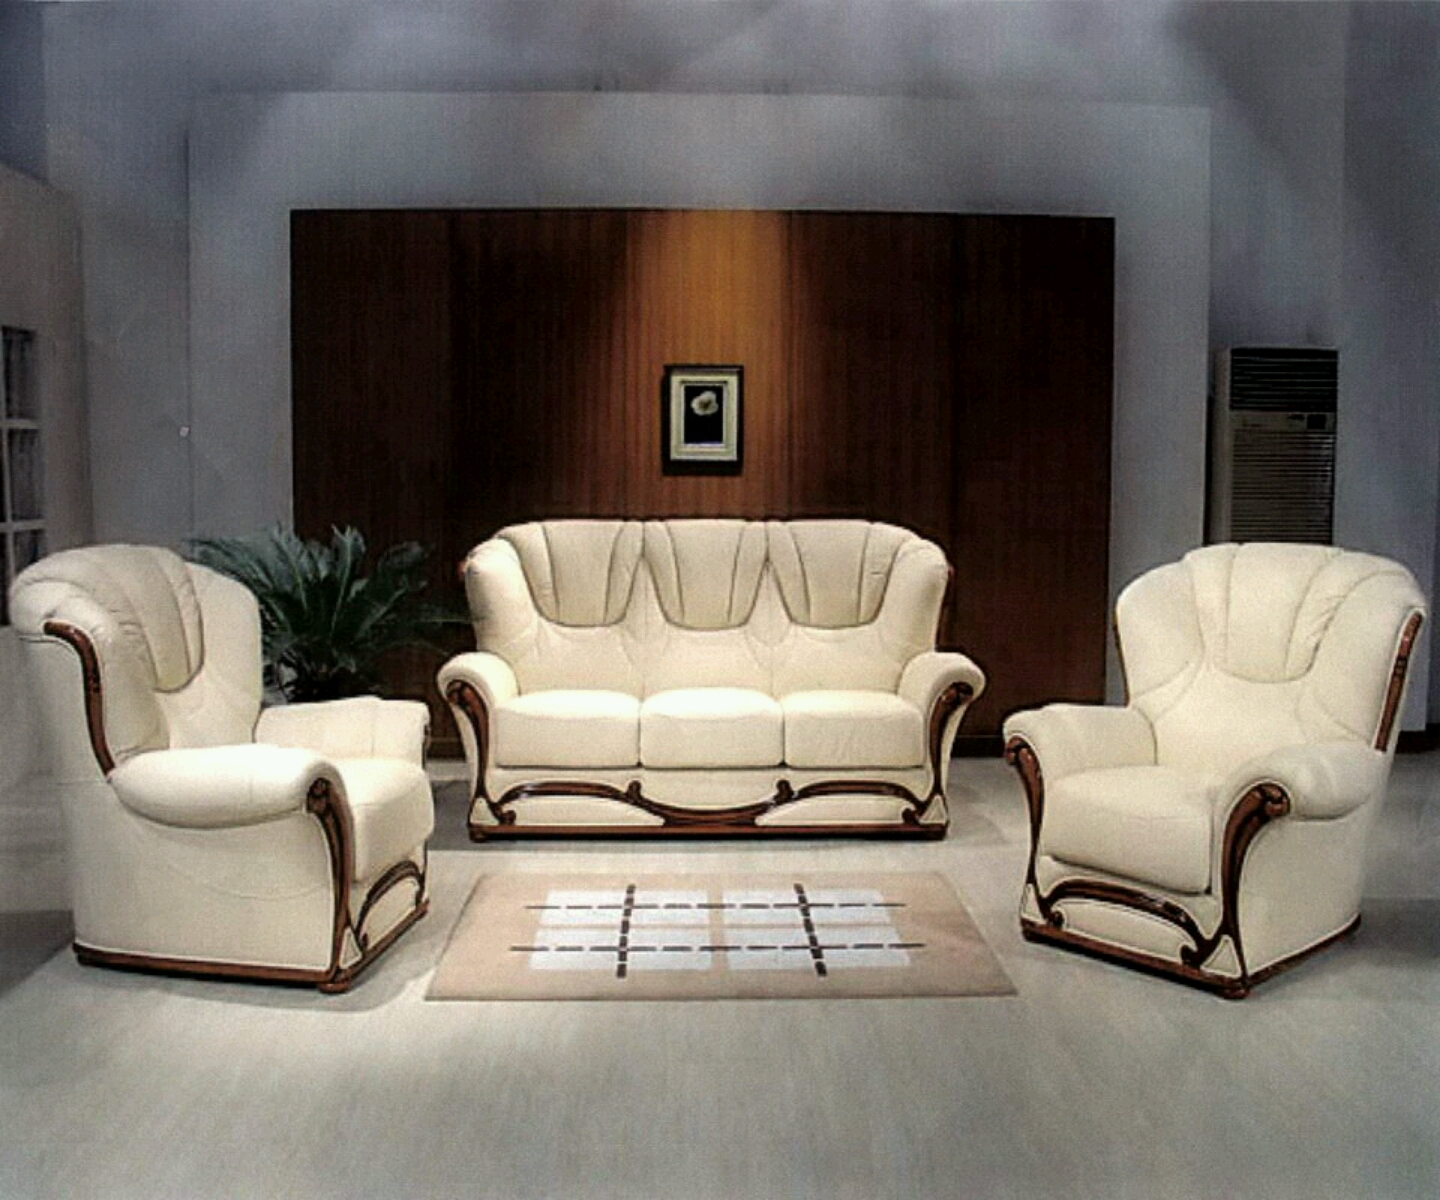 H For Heroine Modern Sofa Set Designs